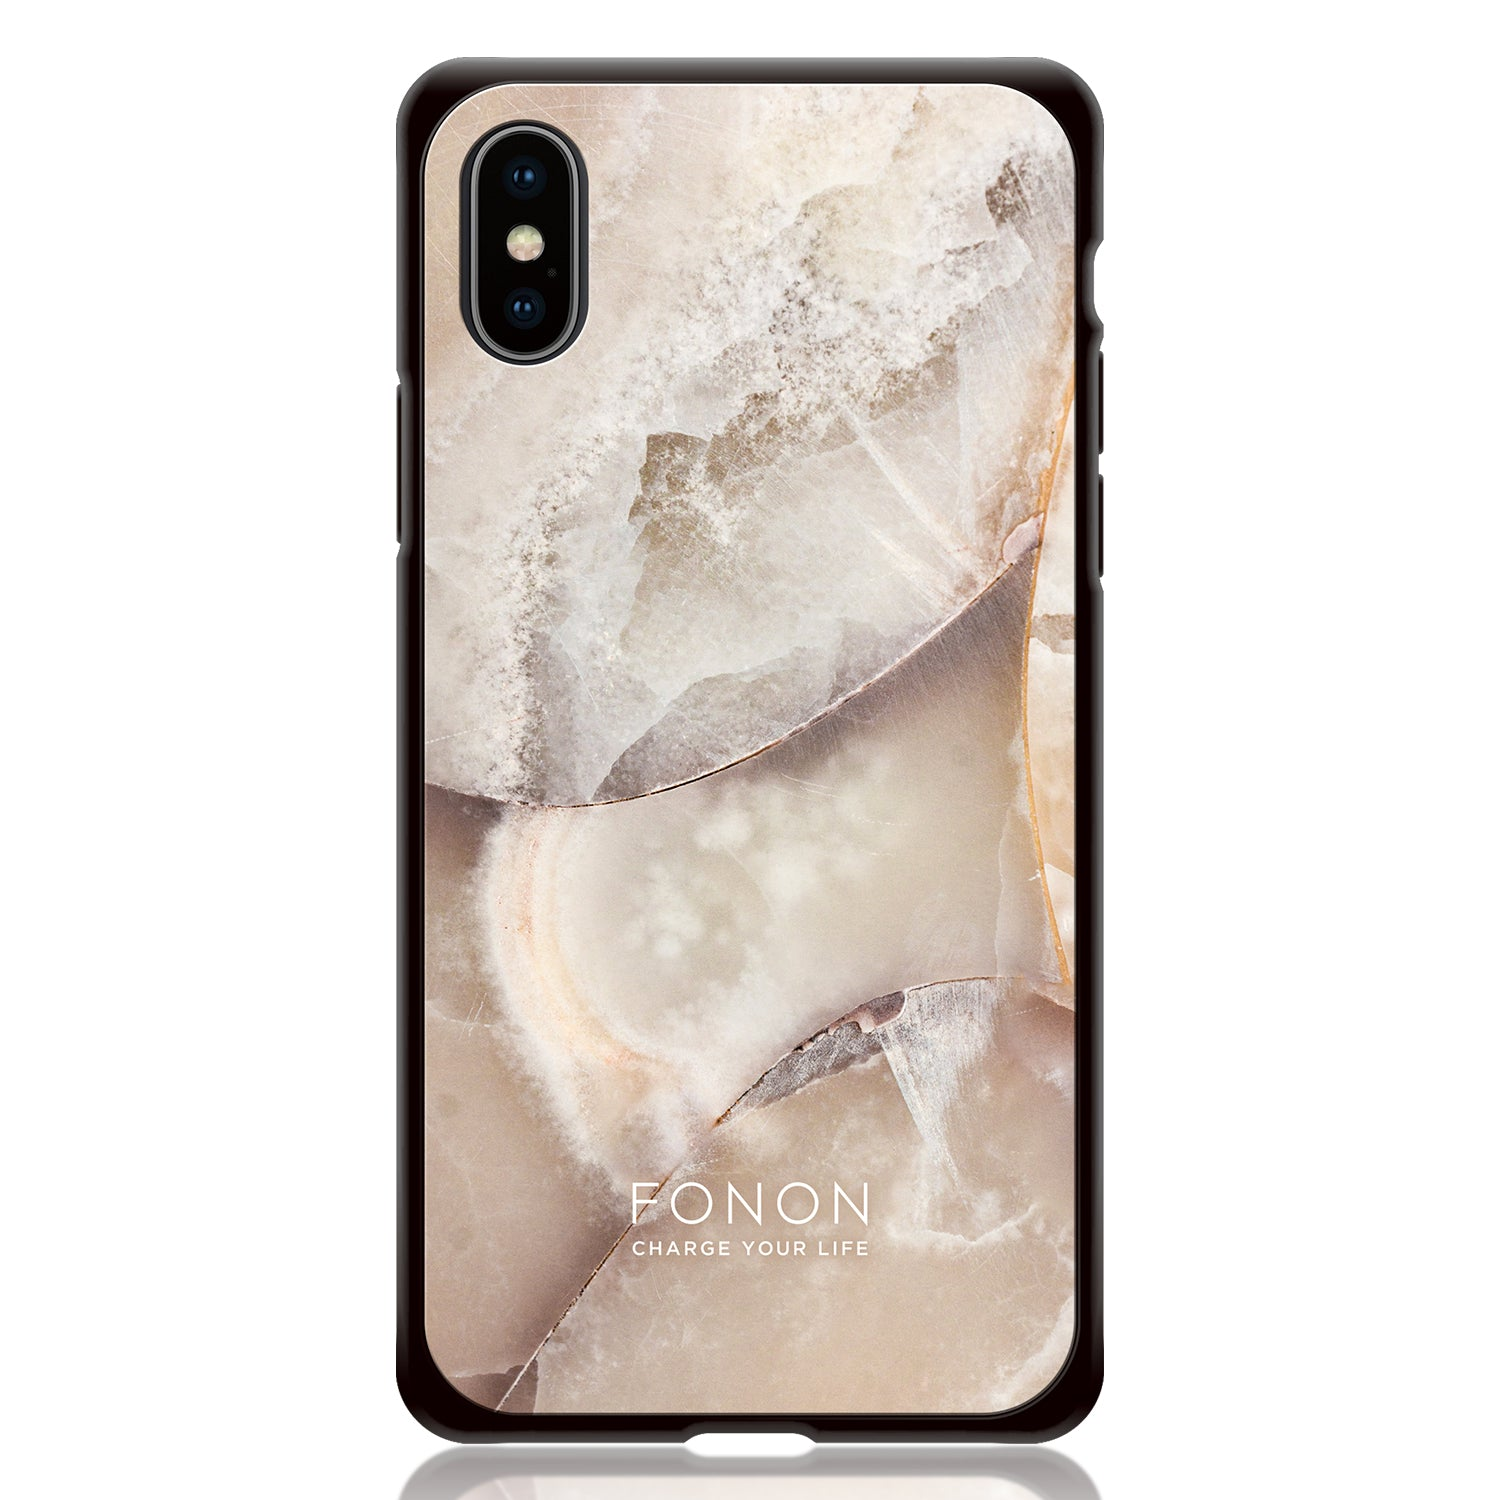 DAMPER GLASS iPhone CASE - STONE PLANET - White Opal